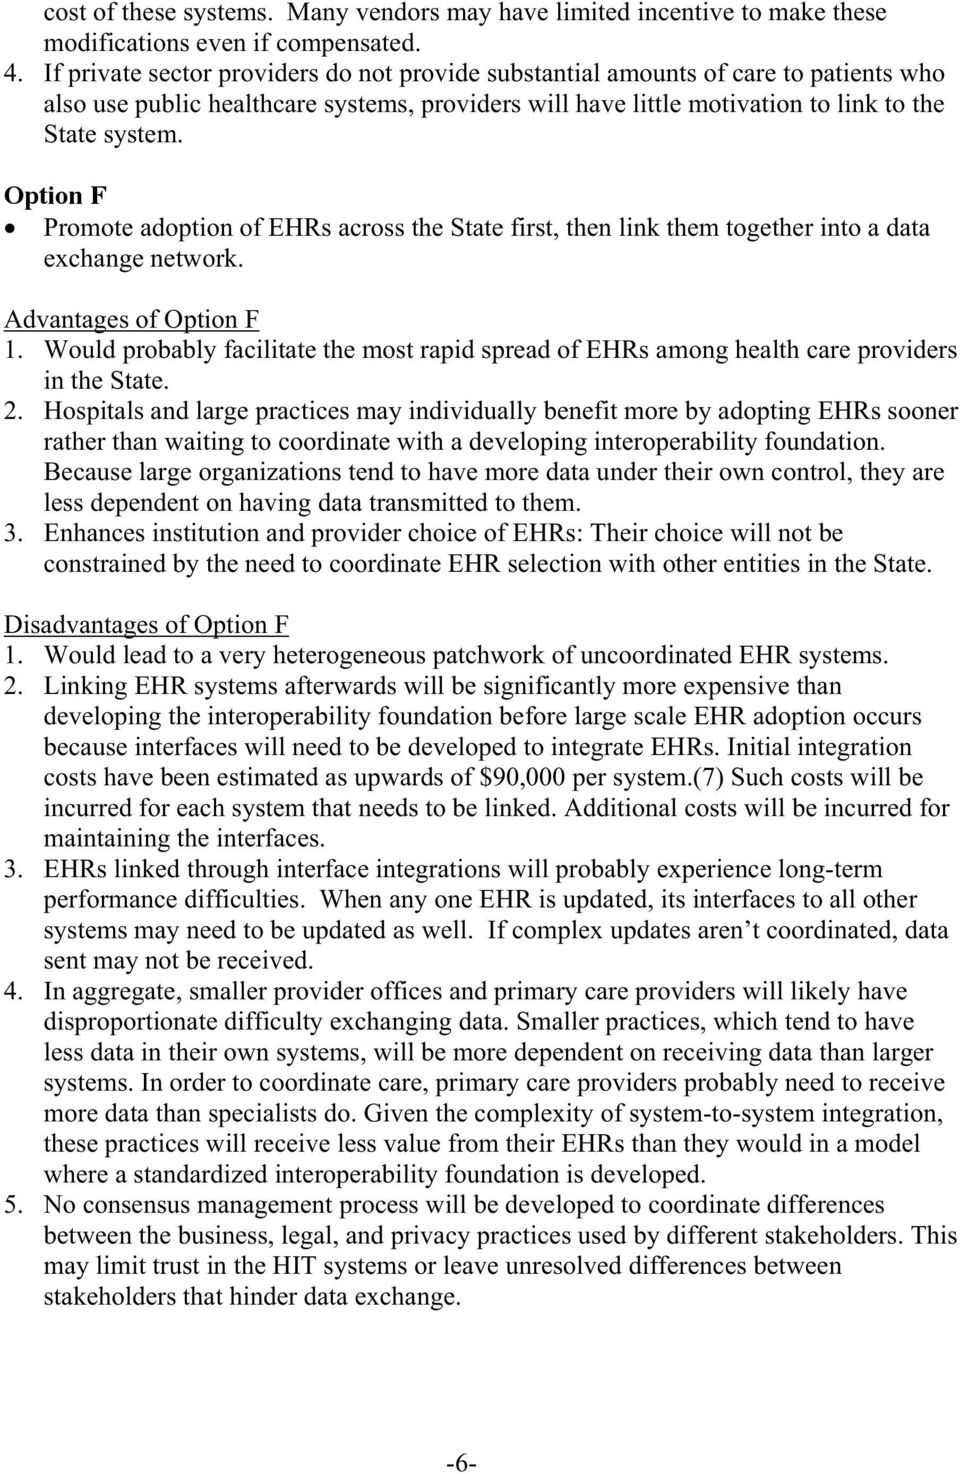 Option F Promote adoption of EHRs across the State first, then link them together into a data exchange network. Advantages of Option F 1.